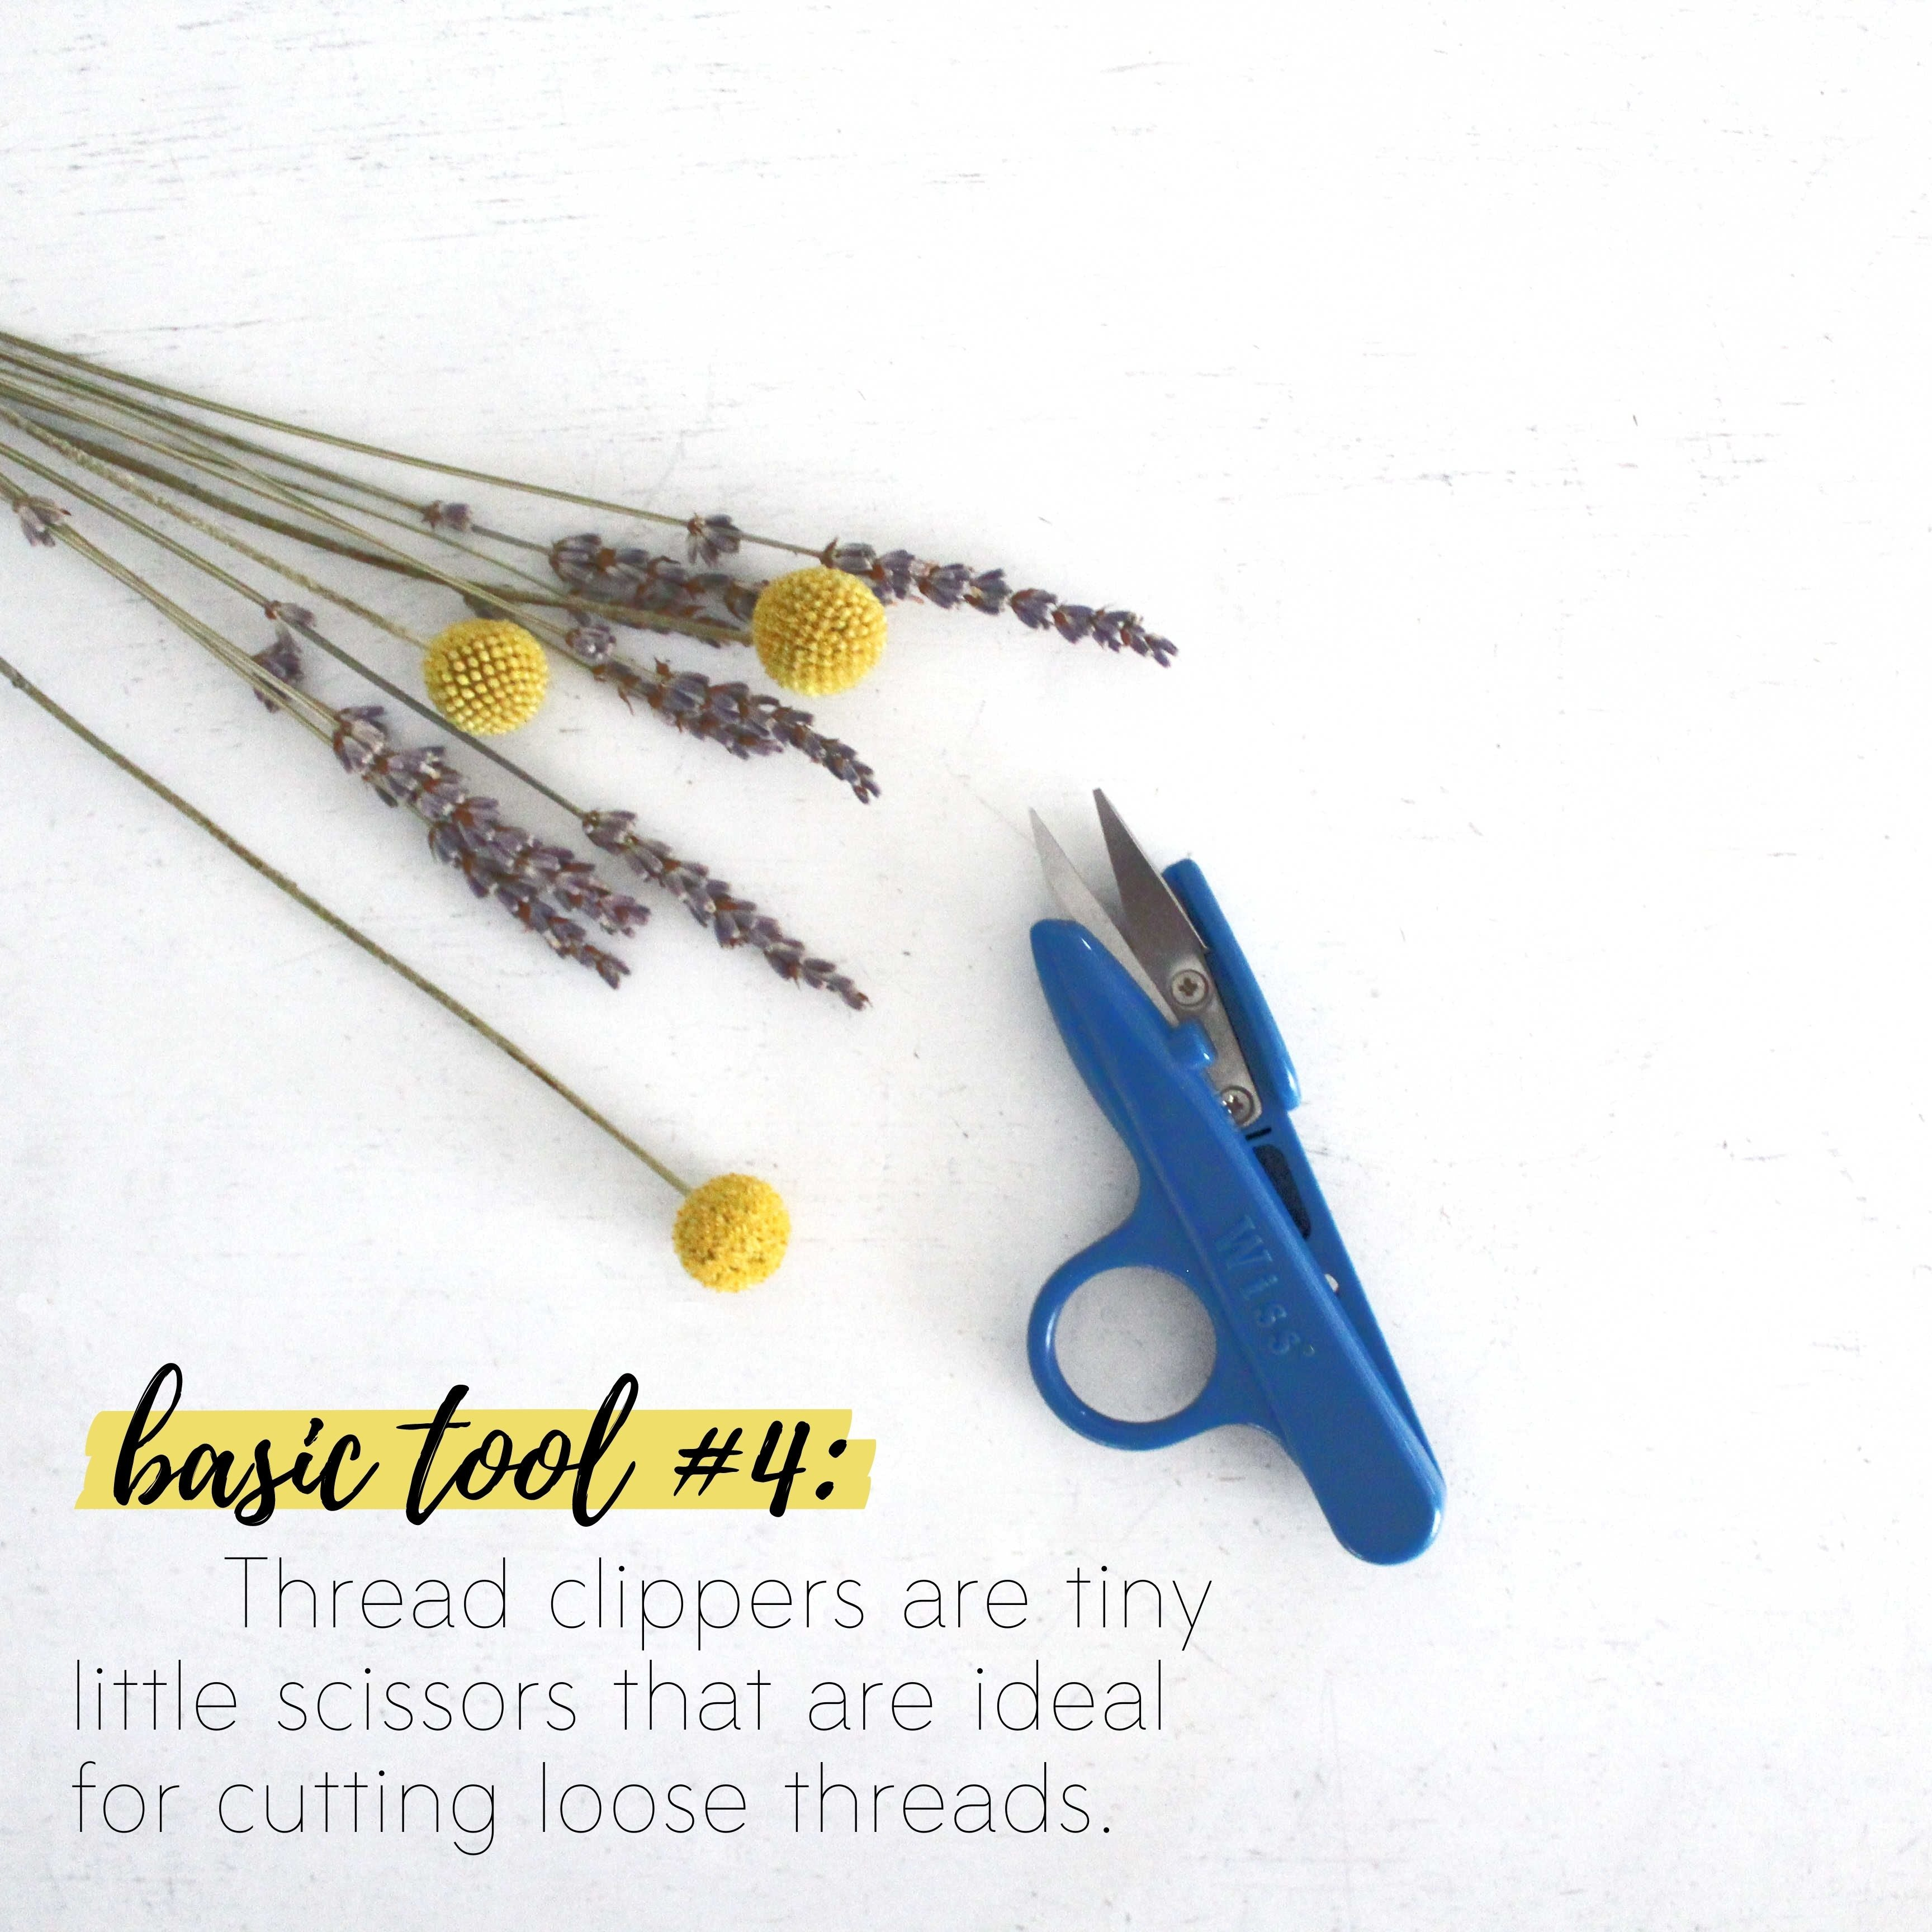 How To Build A Sewing Kit: Basic Tool #4, Thread Clipper